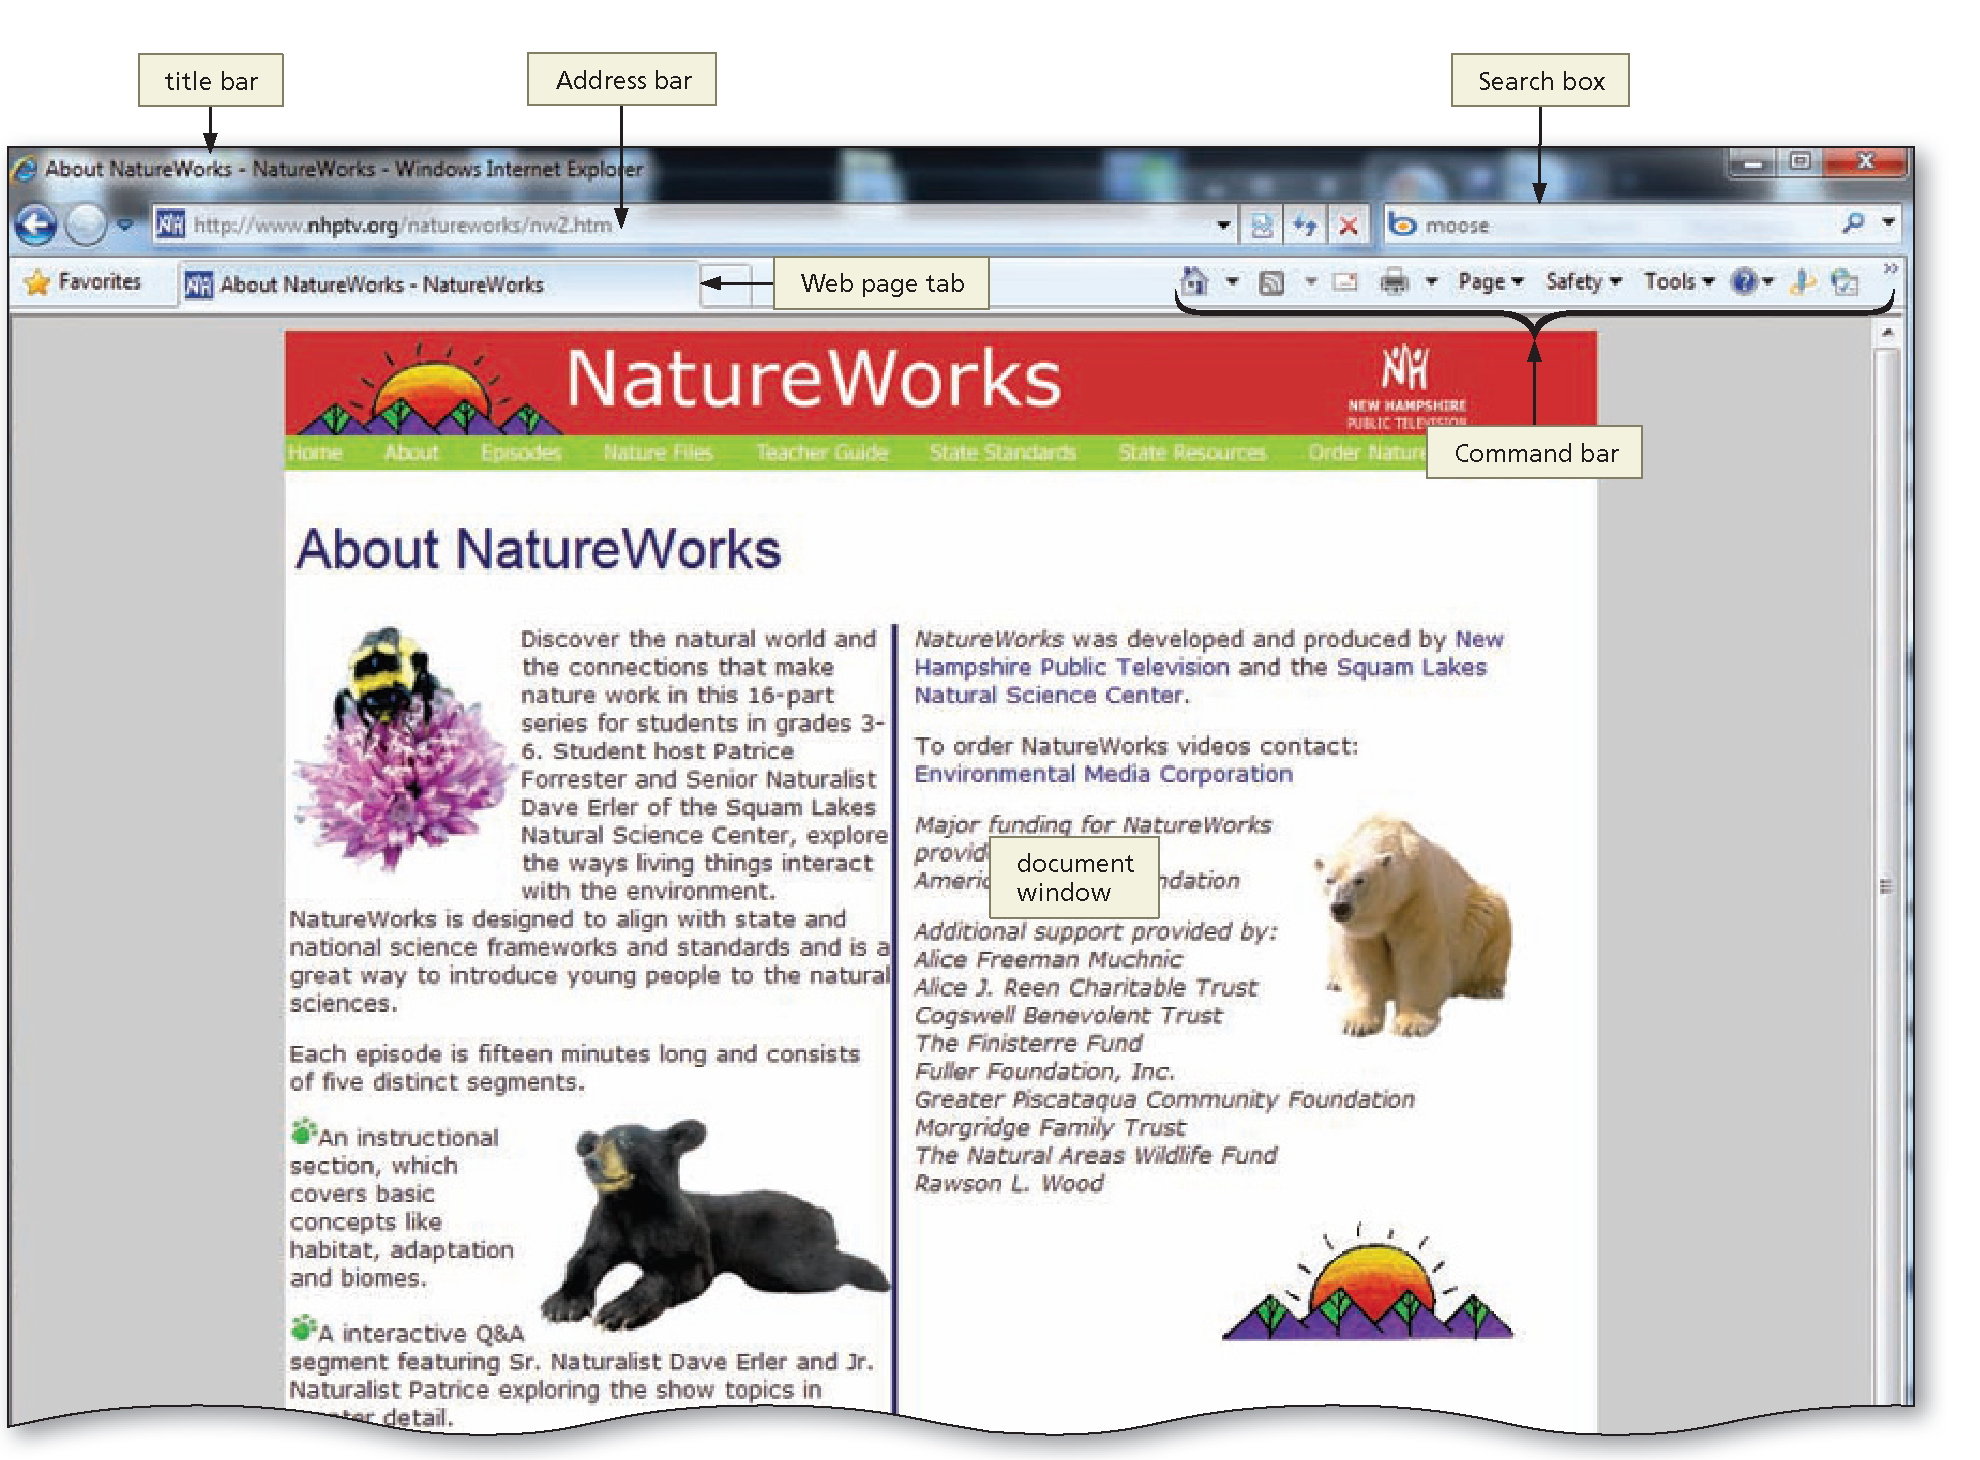 Contents of a web page